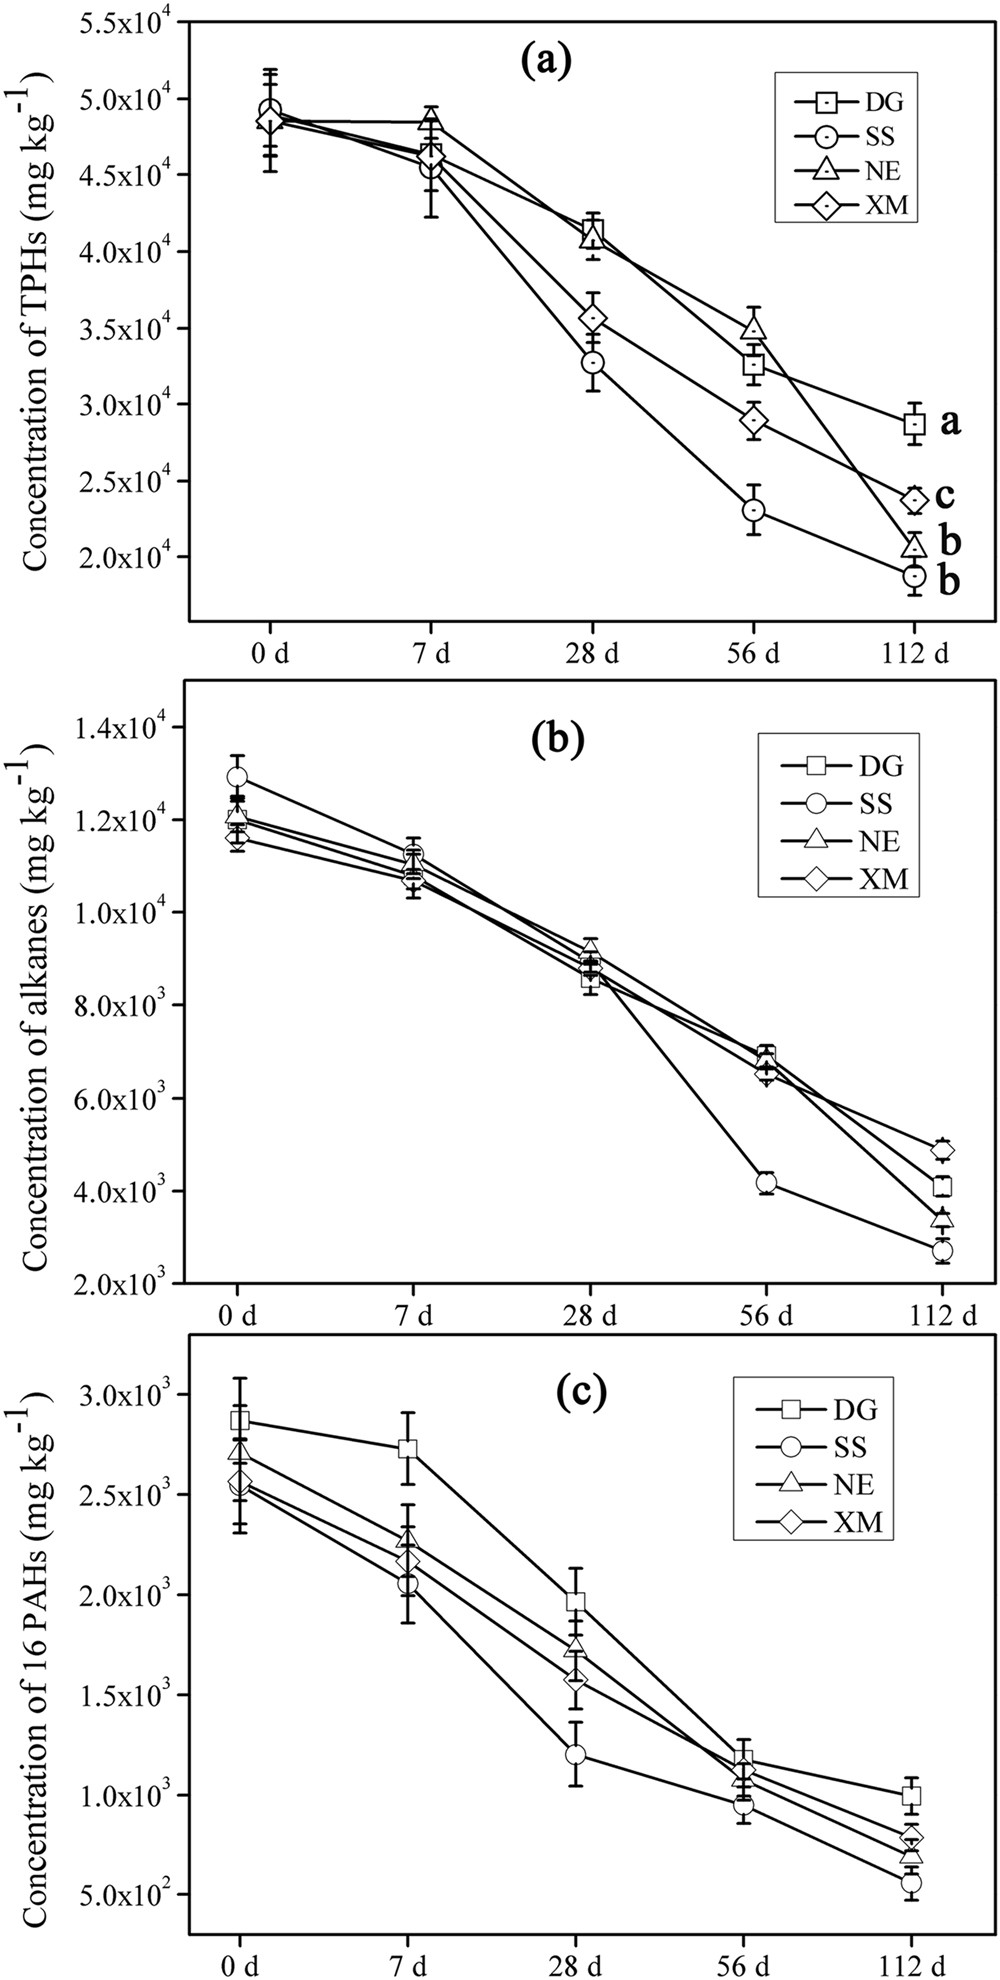 Aerobic degradation of crude oil by microorganisms in soils